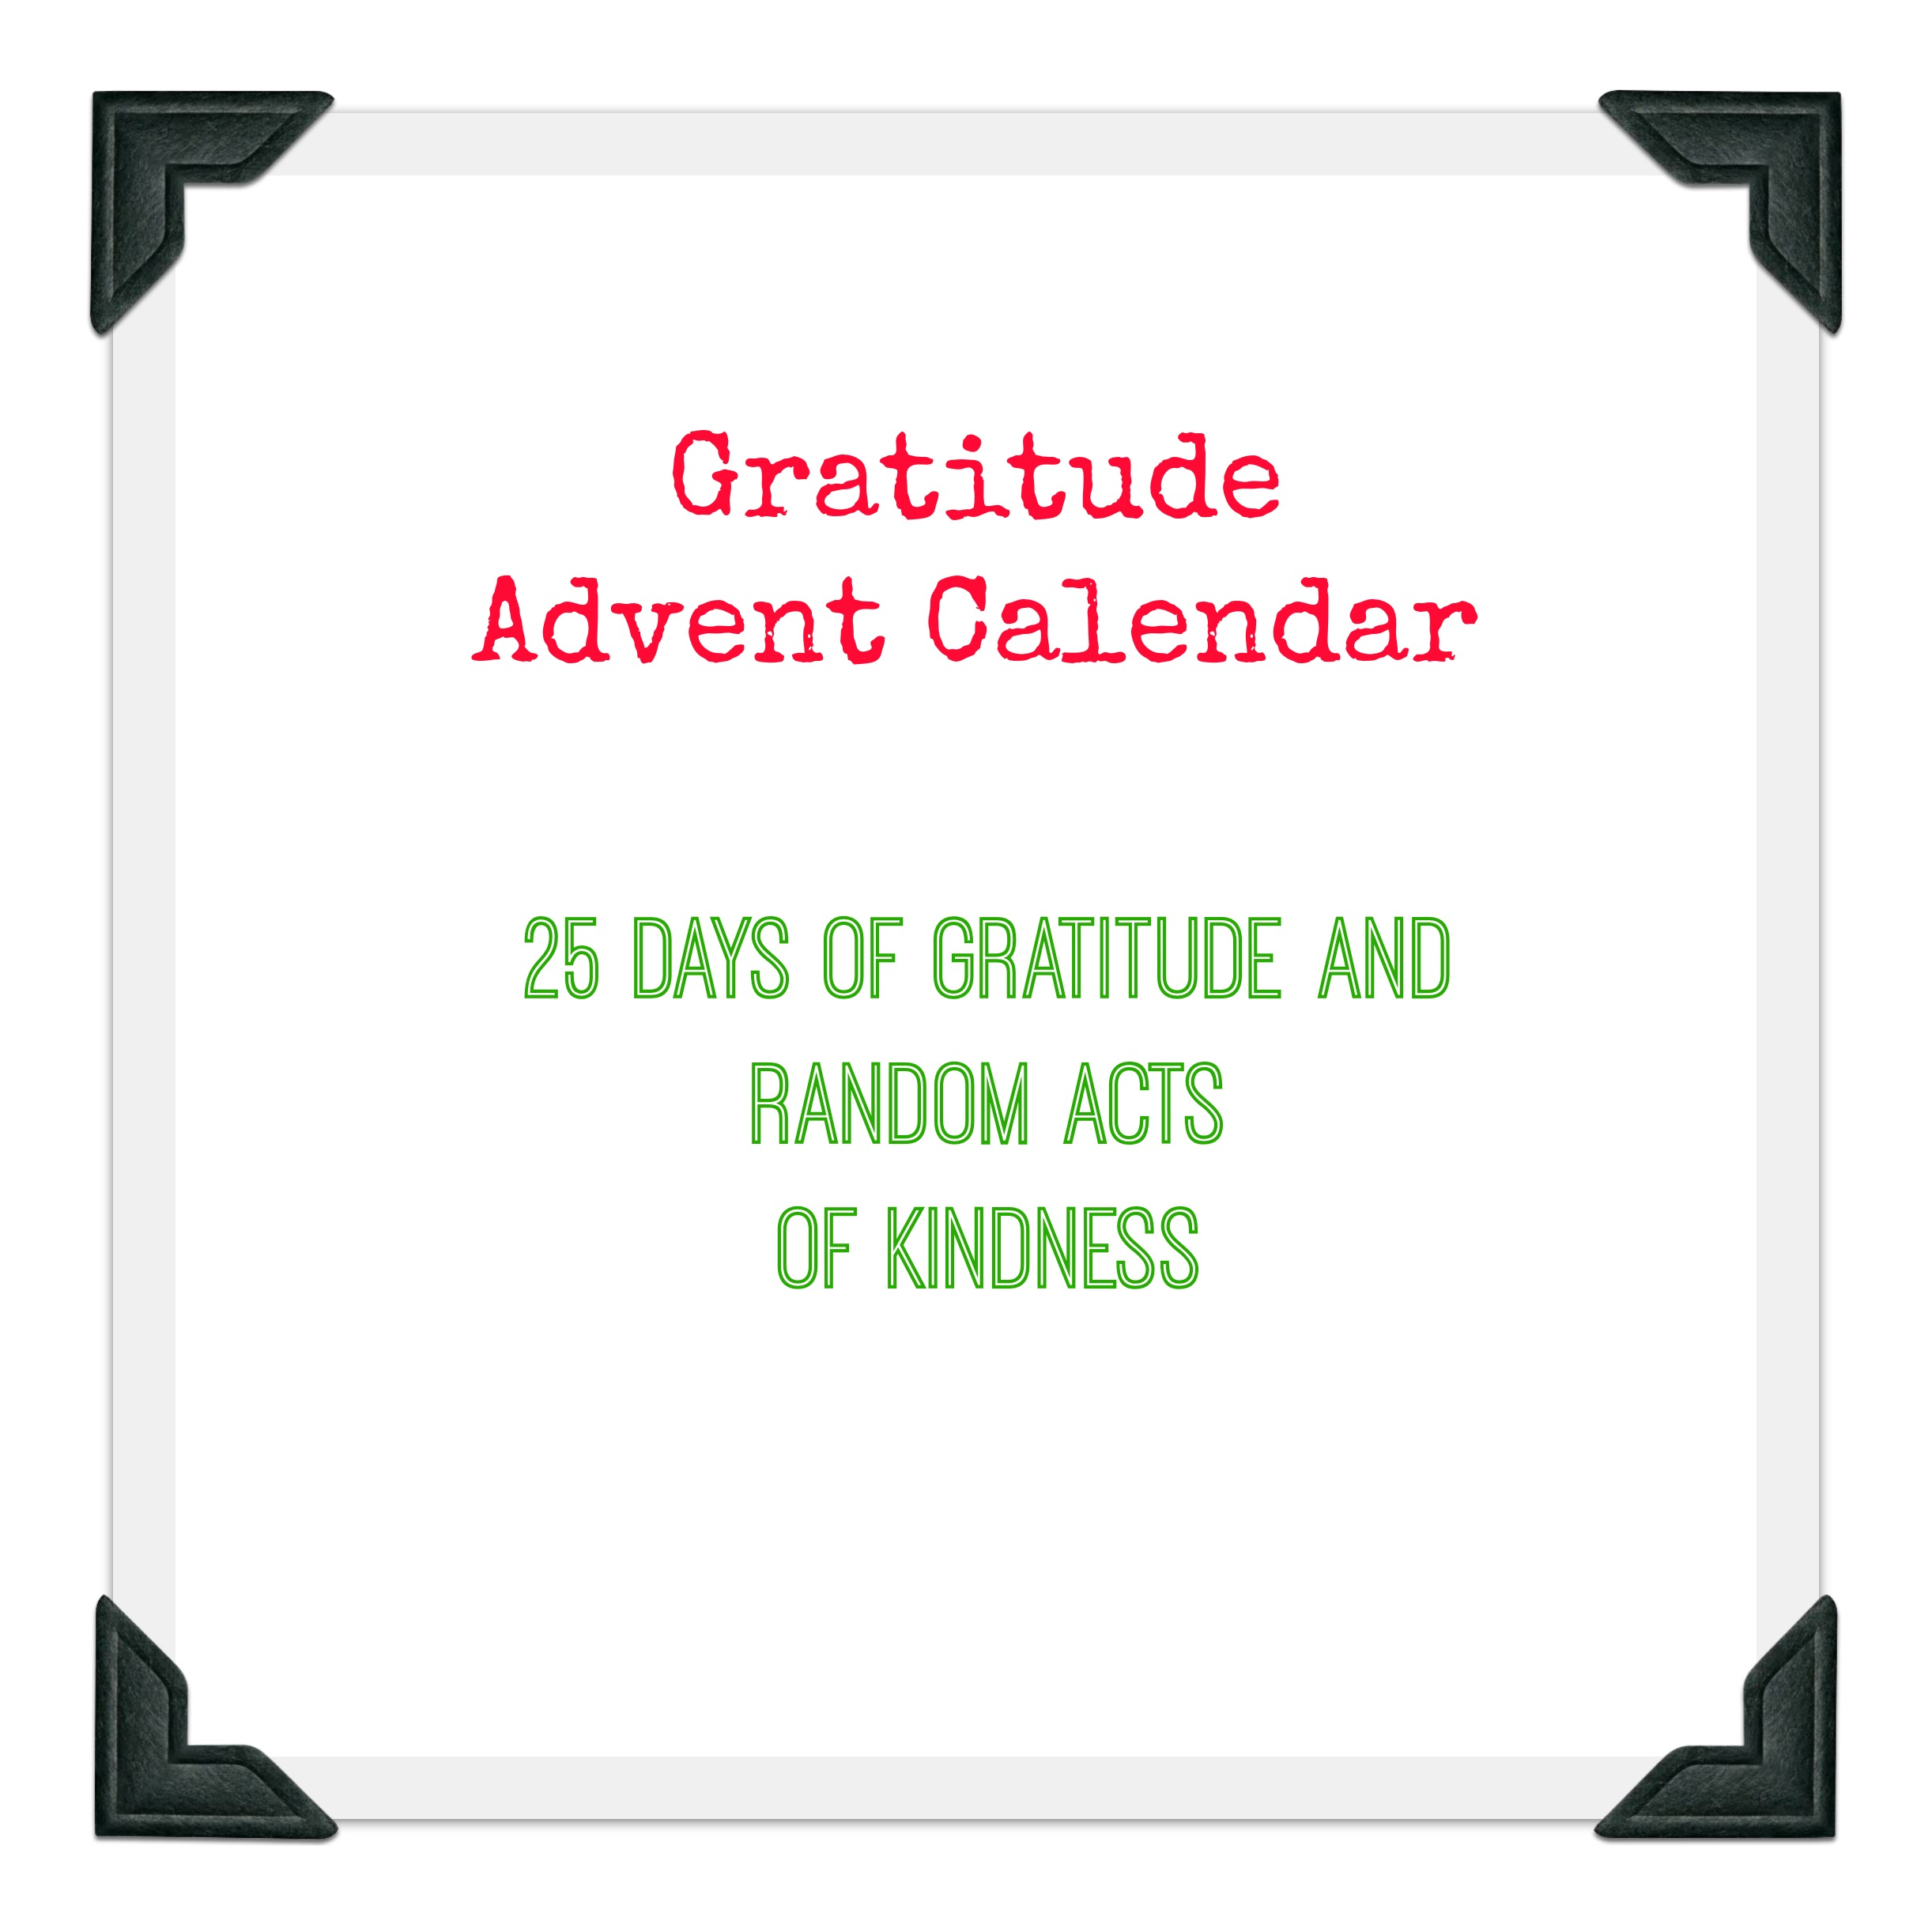 It's advent calendar time! Anyone who has read this site knows I love advent calendars. In our family we print out a list of Christmas related activities and put one in each box with a little toy or candy.